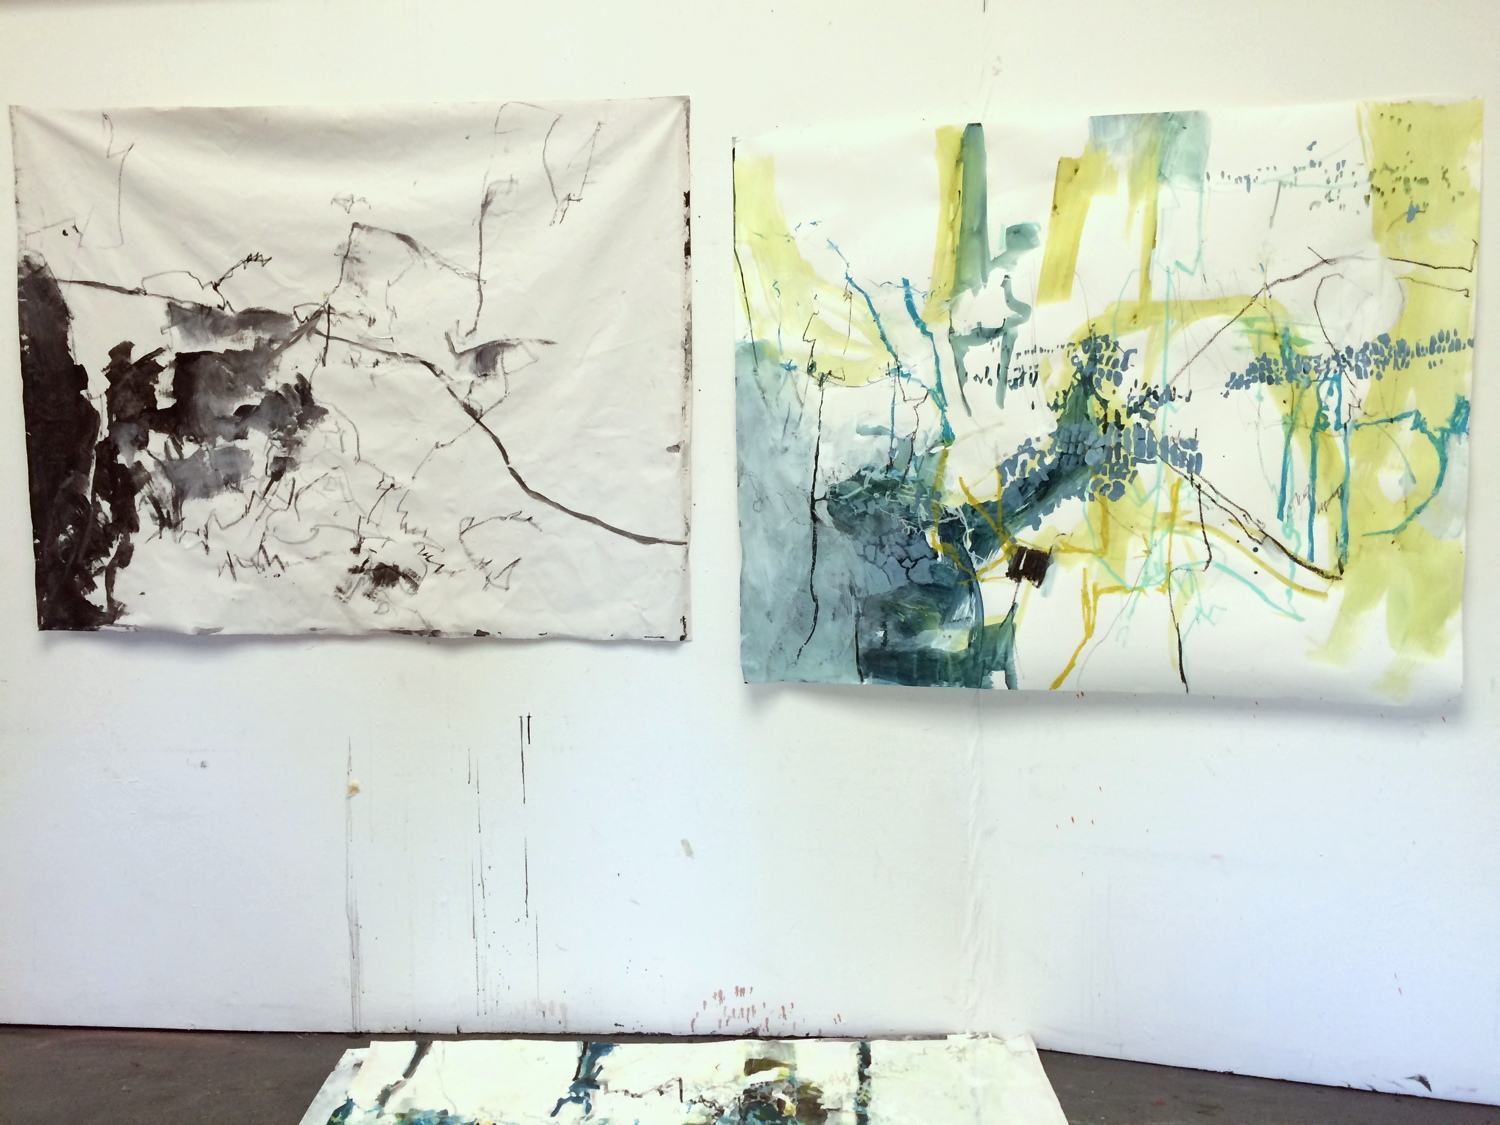 Studio wall: work in progress (left).  Soundscape 2  (right).